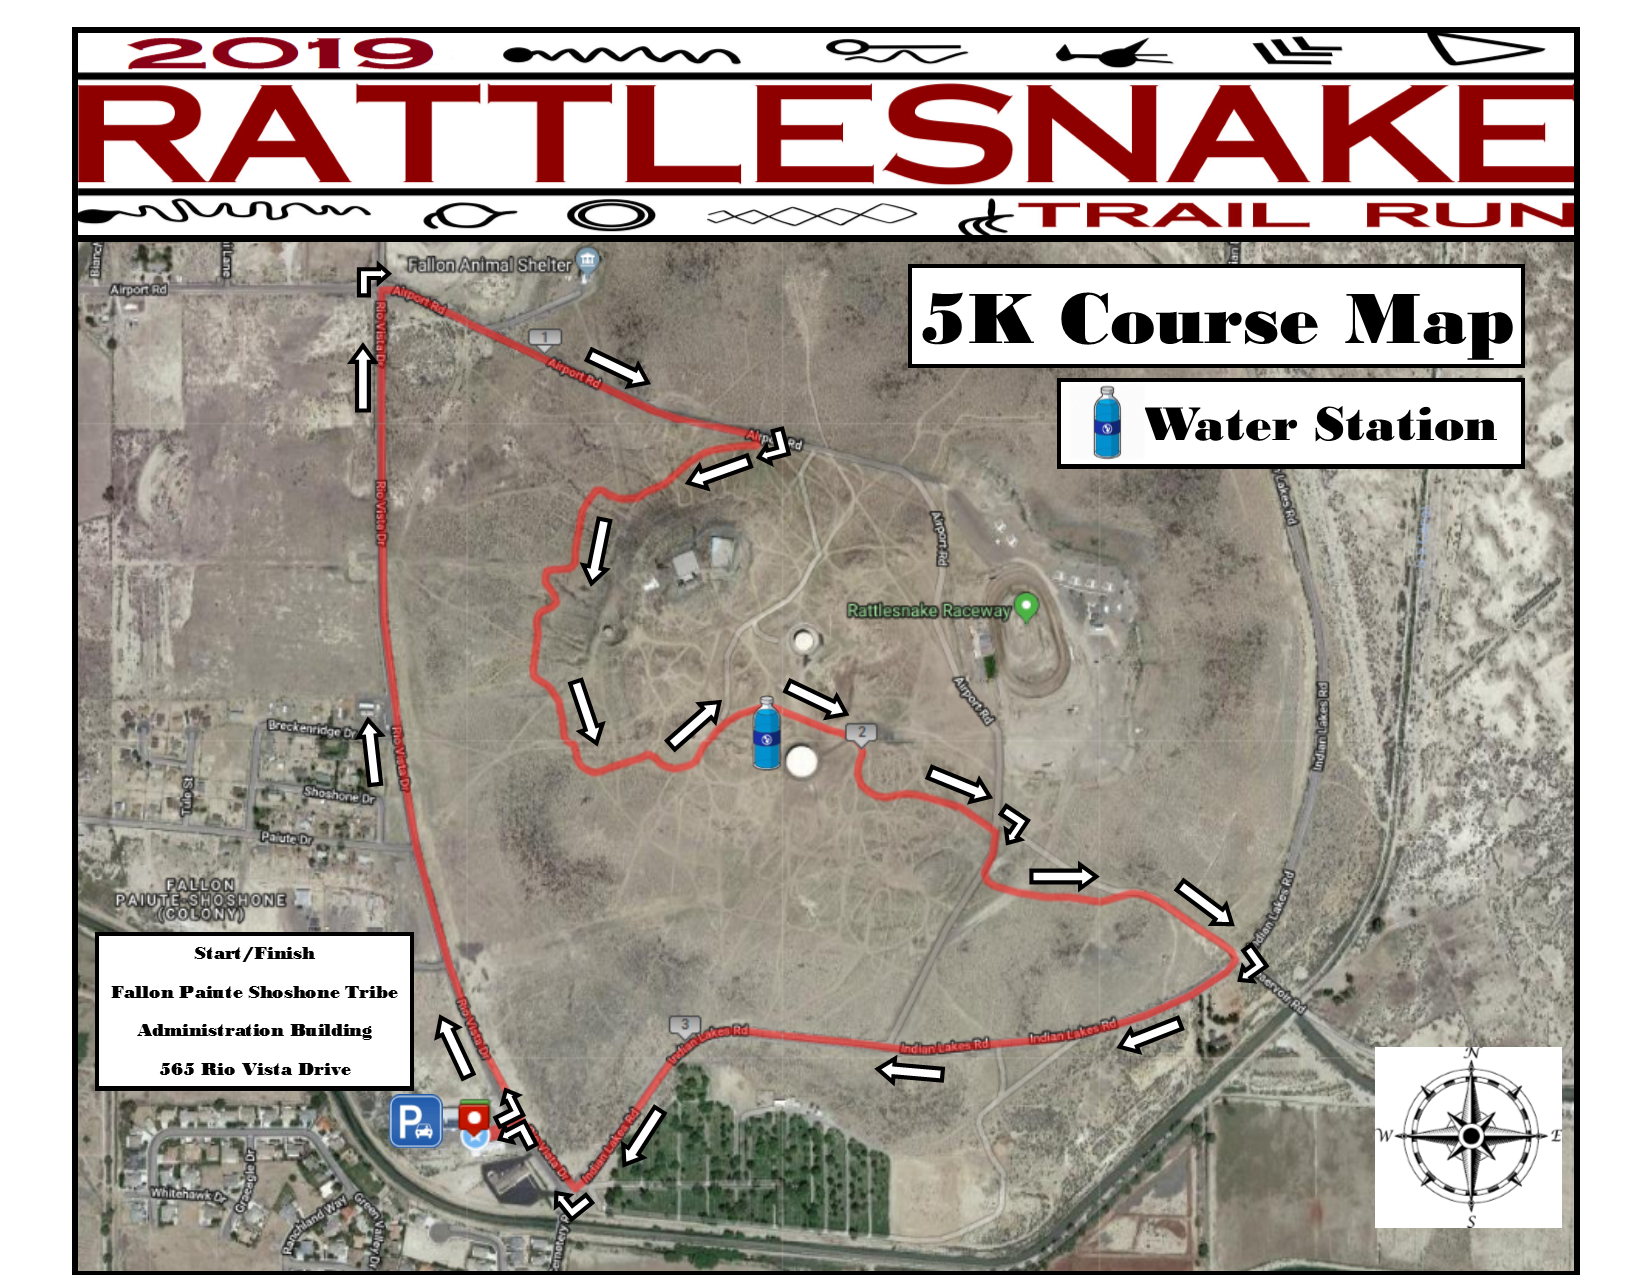 Rattlesnake Trail Run (2019) - 5K Course Map.png